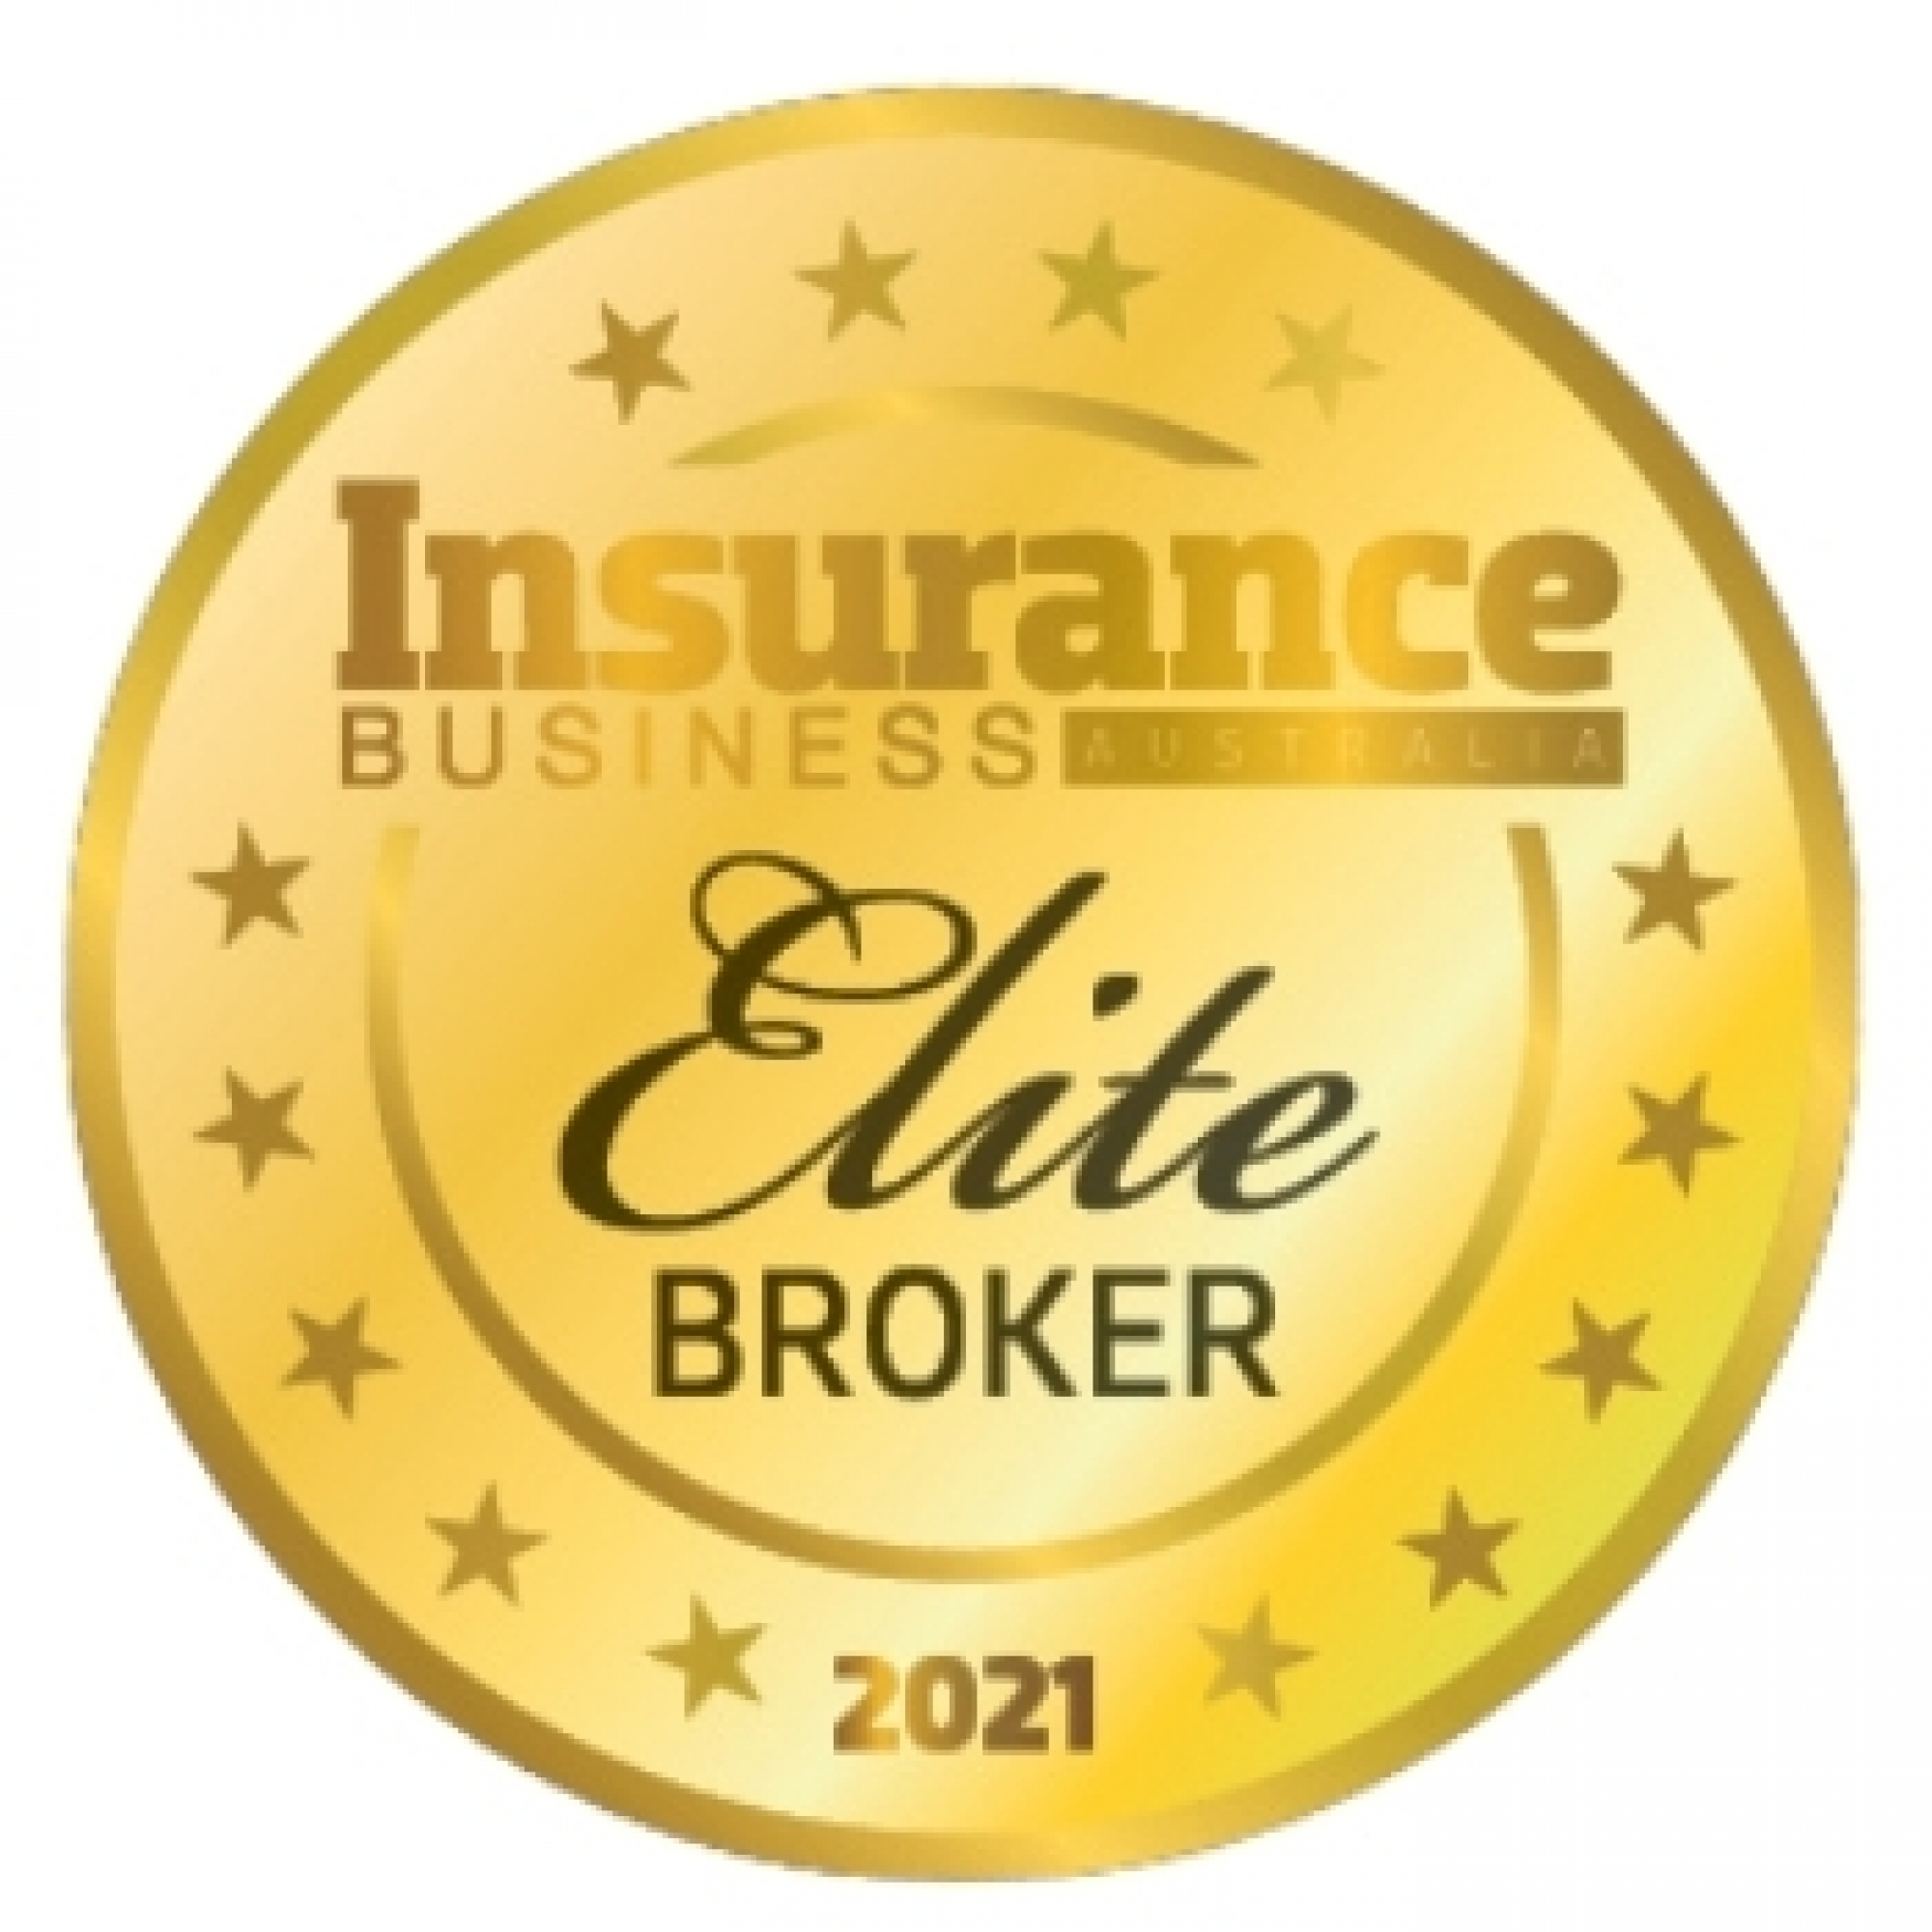 2021 Insurance Business Australia Elite Brokers